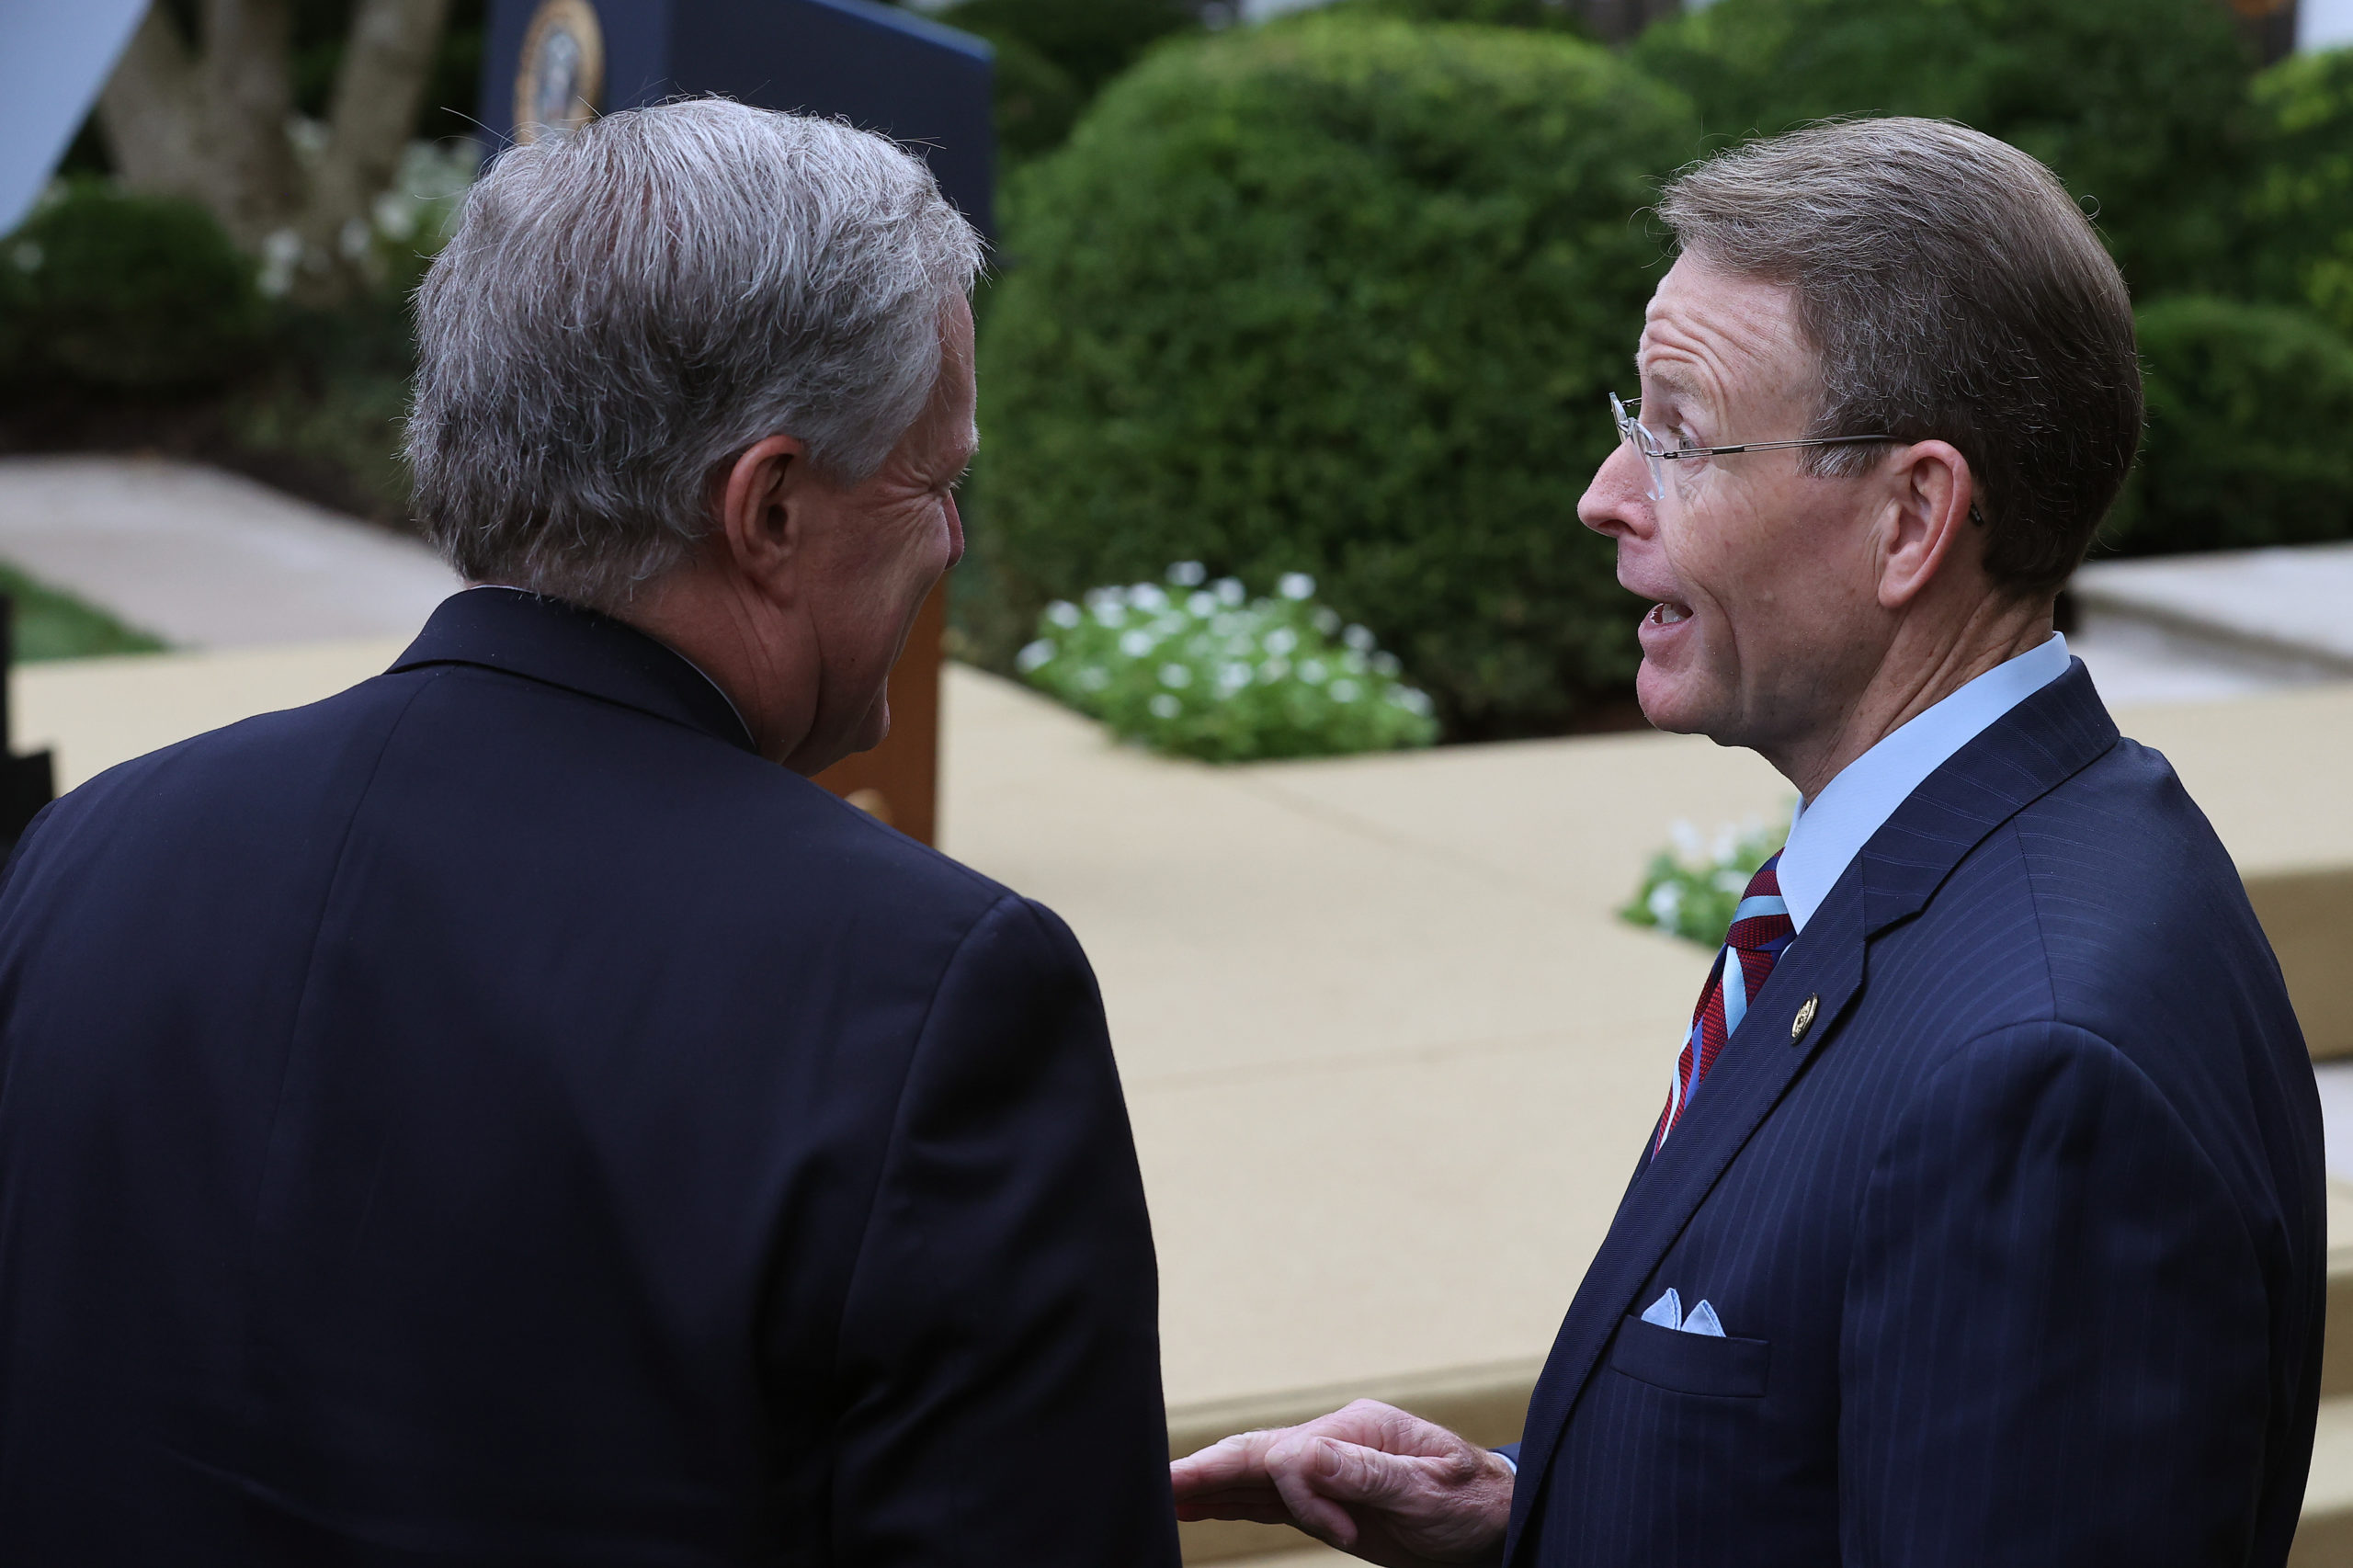 Family Research Council president Tony Perkins talks with White House Chief of Staff Mark Meadows after President Donald Trump introduced Supreme Court nominee Amy Coney Barrett in the Rose Garden at the White House on September 26, 2020